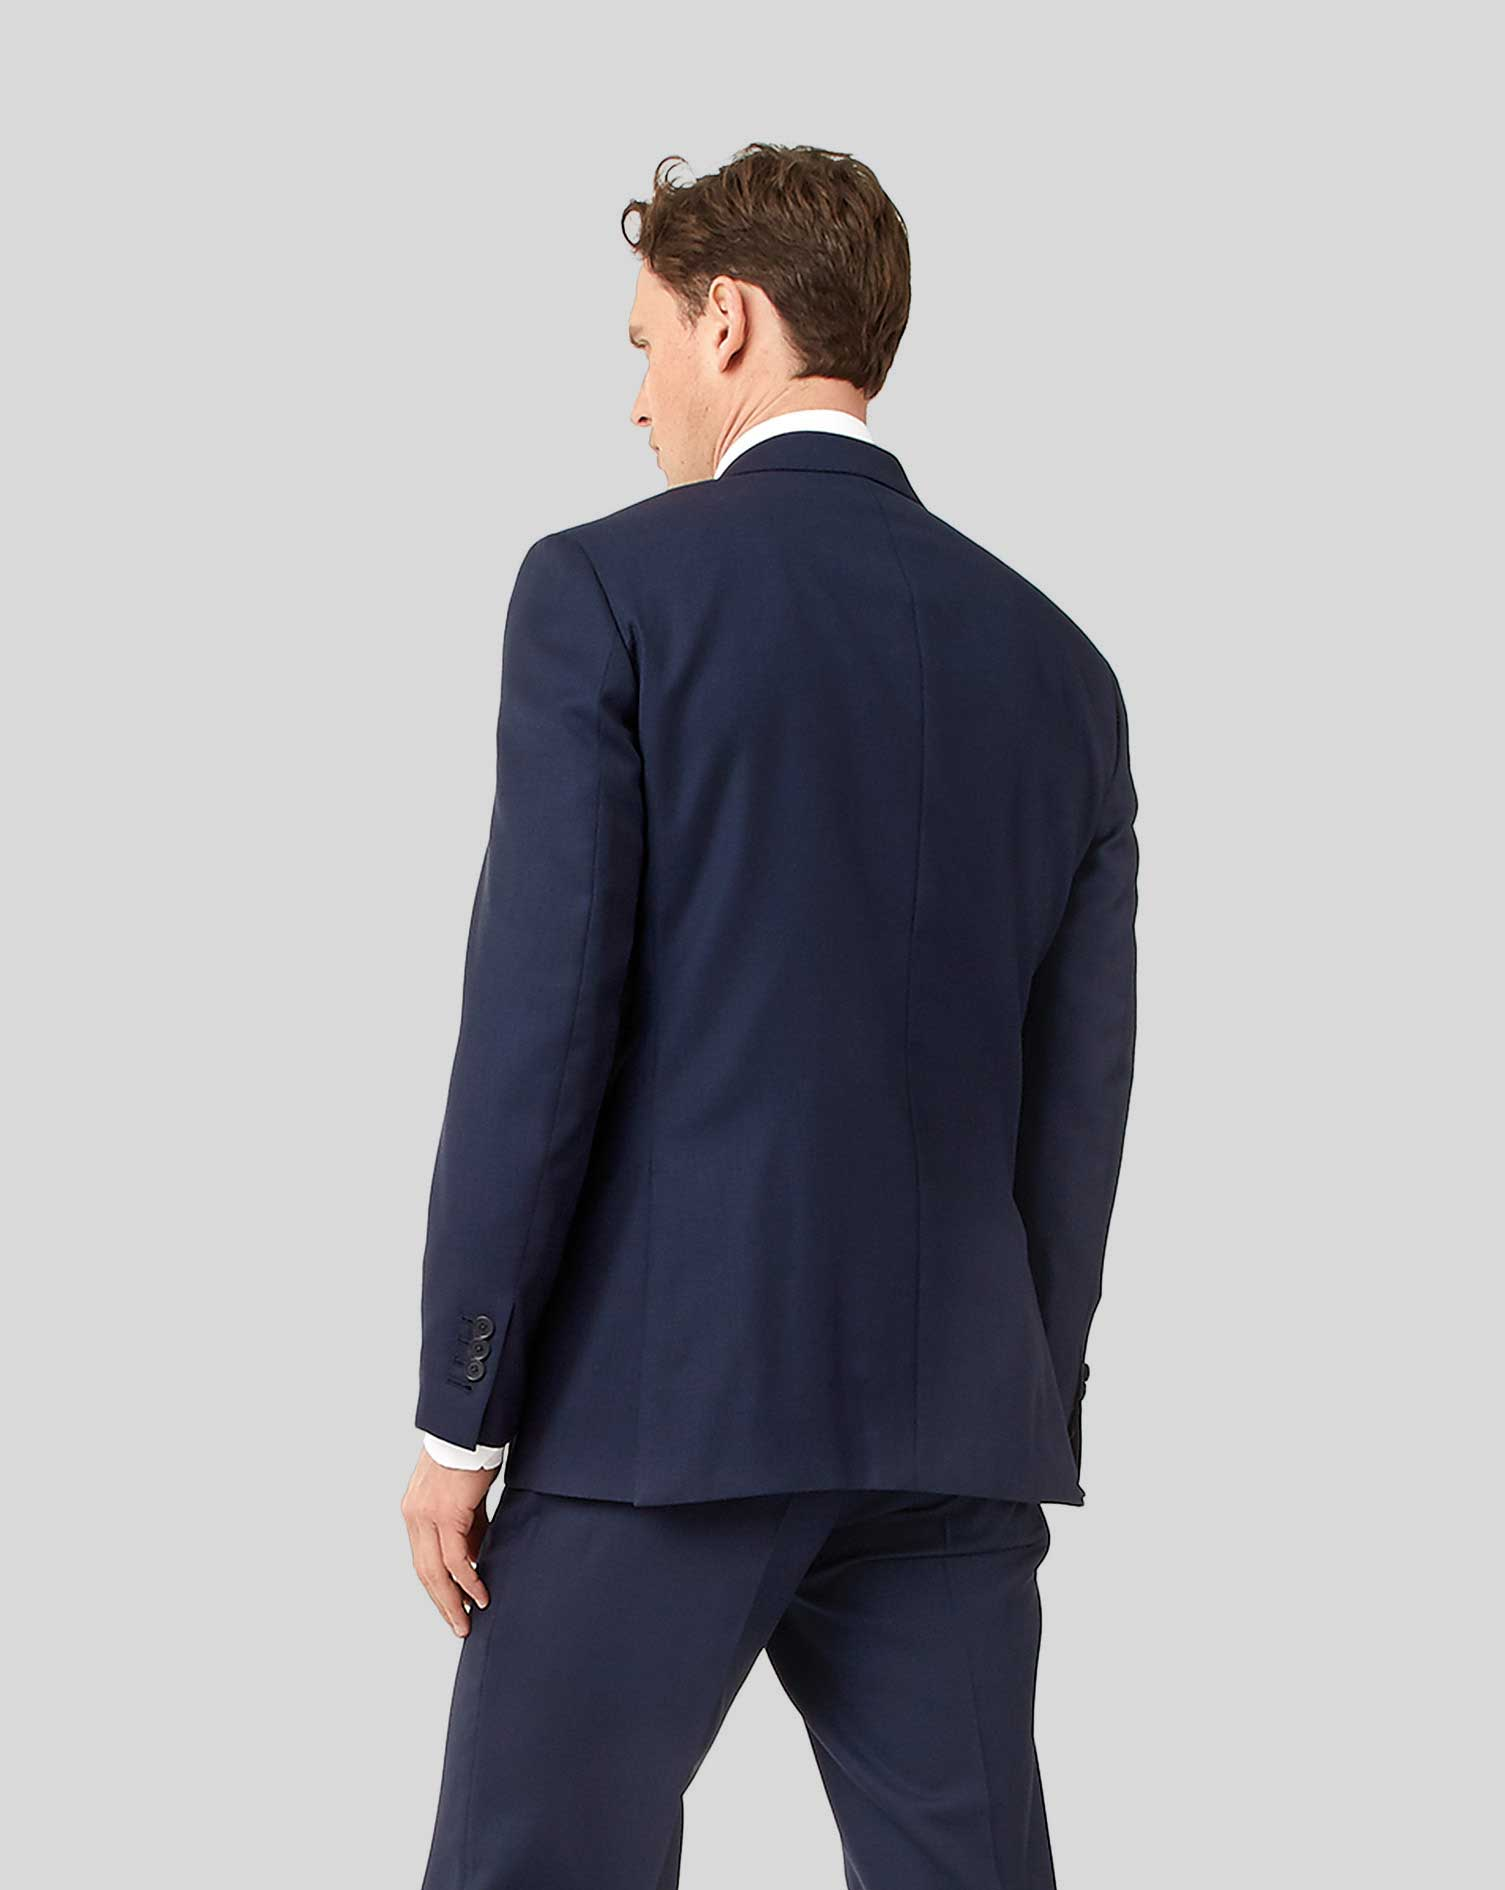 Navy classic fit birdseye travel suit jacket